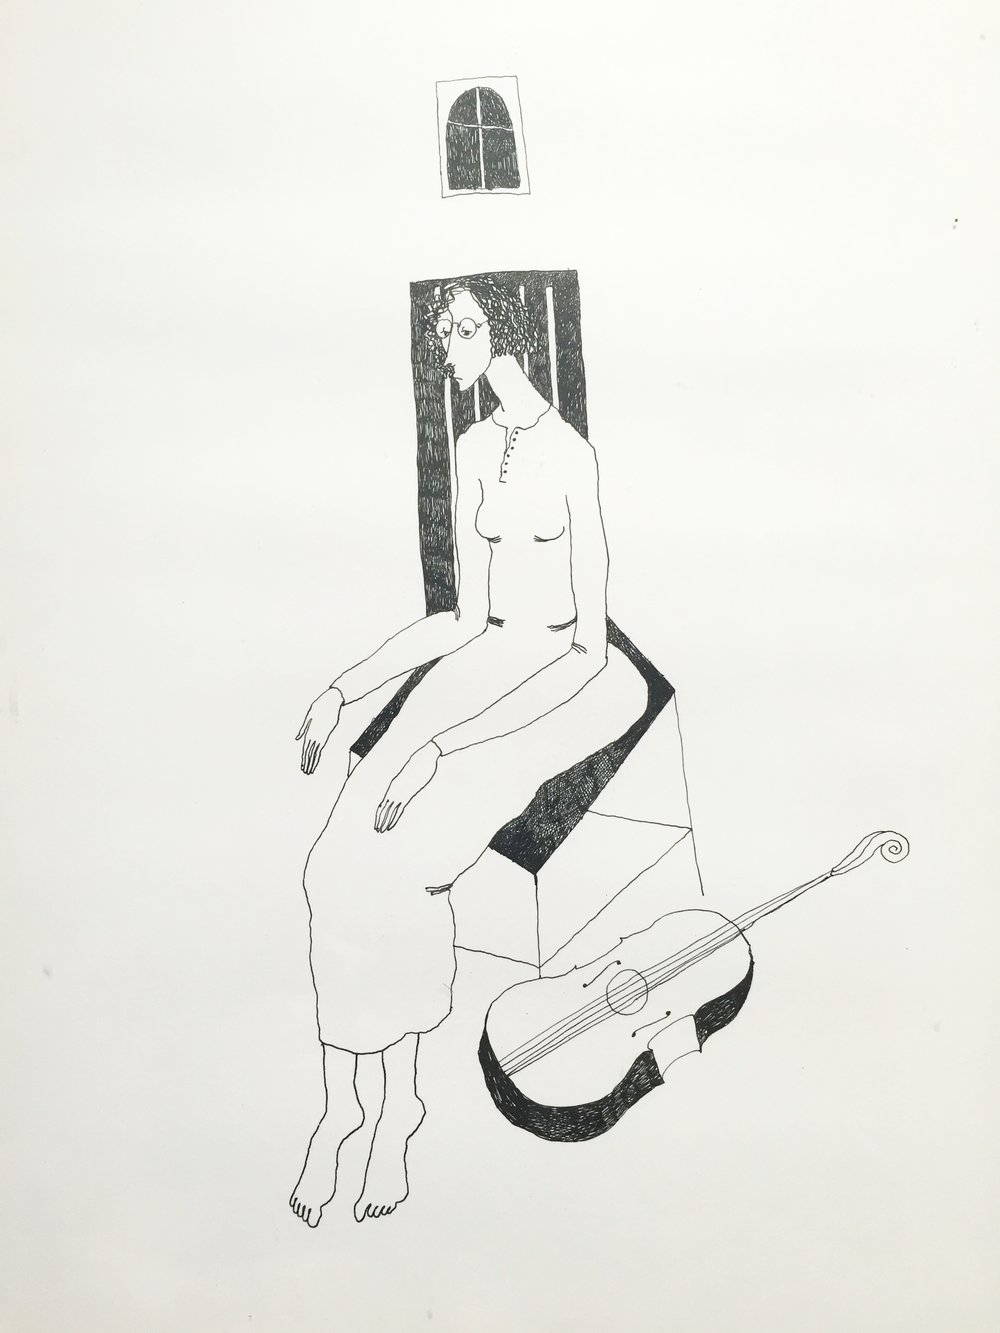 Woman with Viol, 1992